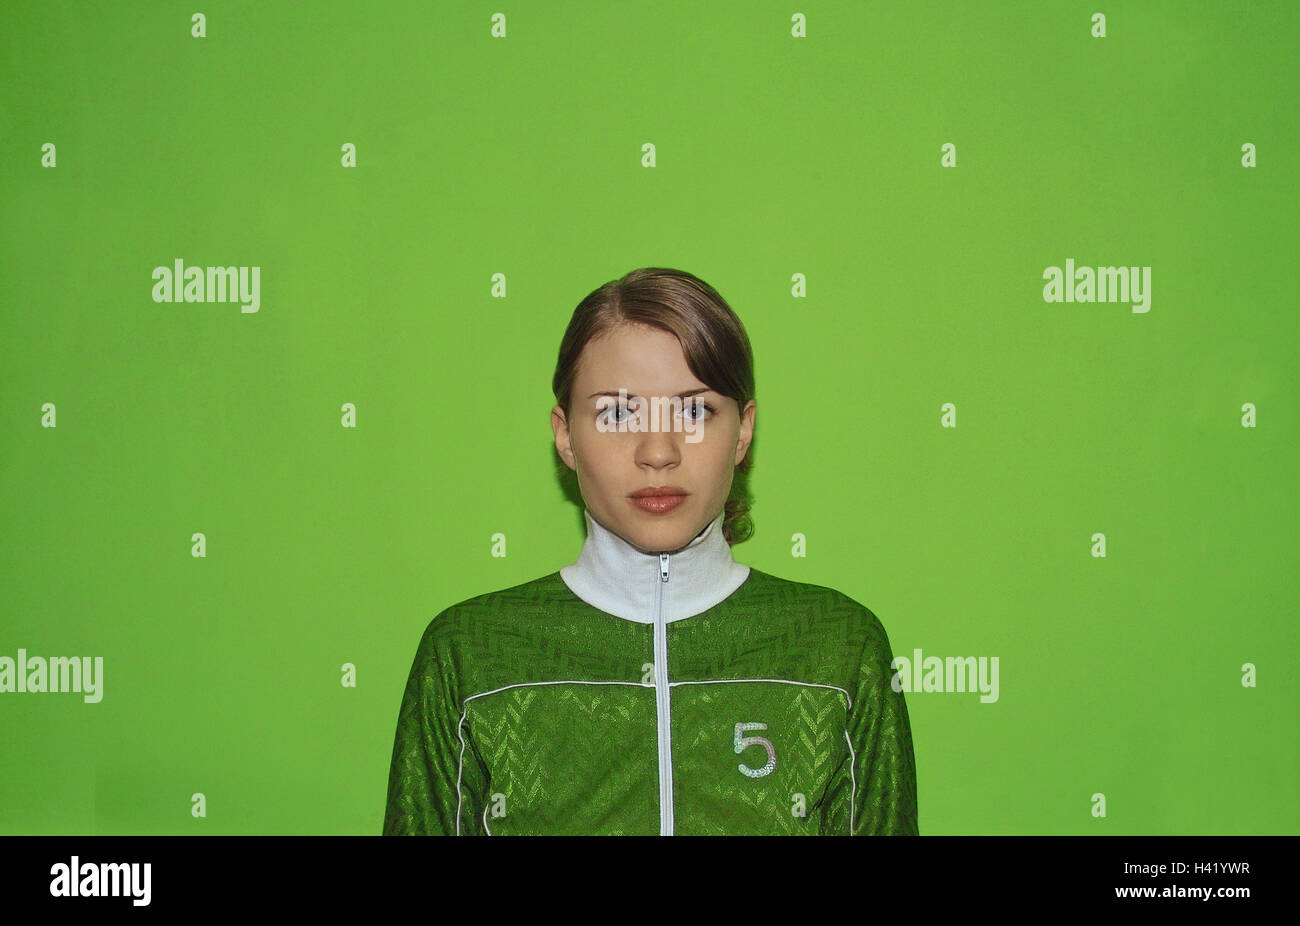 Woman, young, seriously, portrait, women's portrait, 20-30 years, jacket, tracksuit top, sportily, collars, - Stock Image